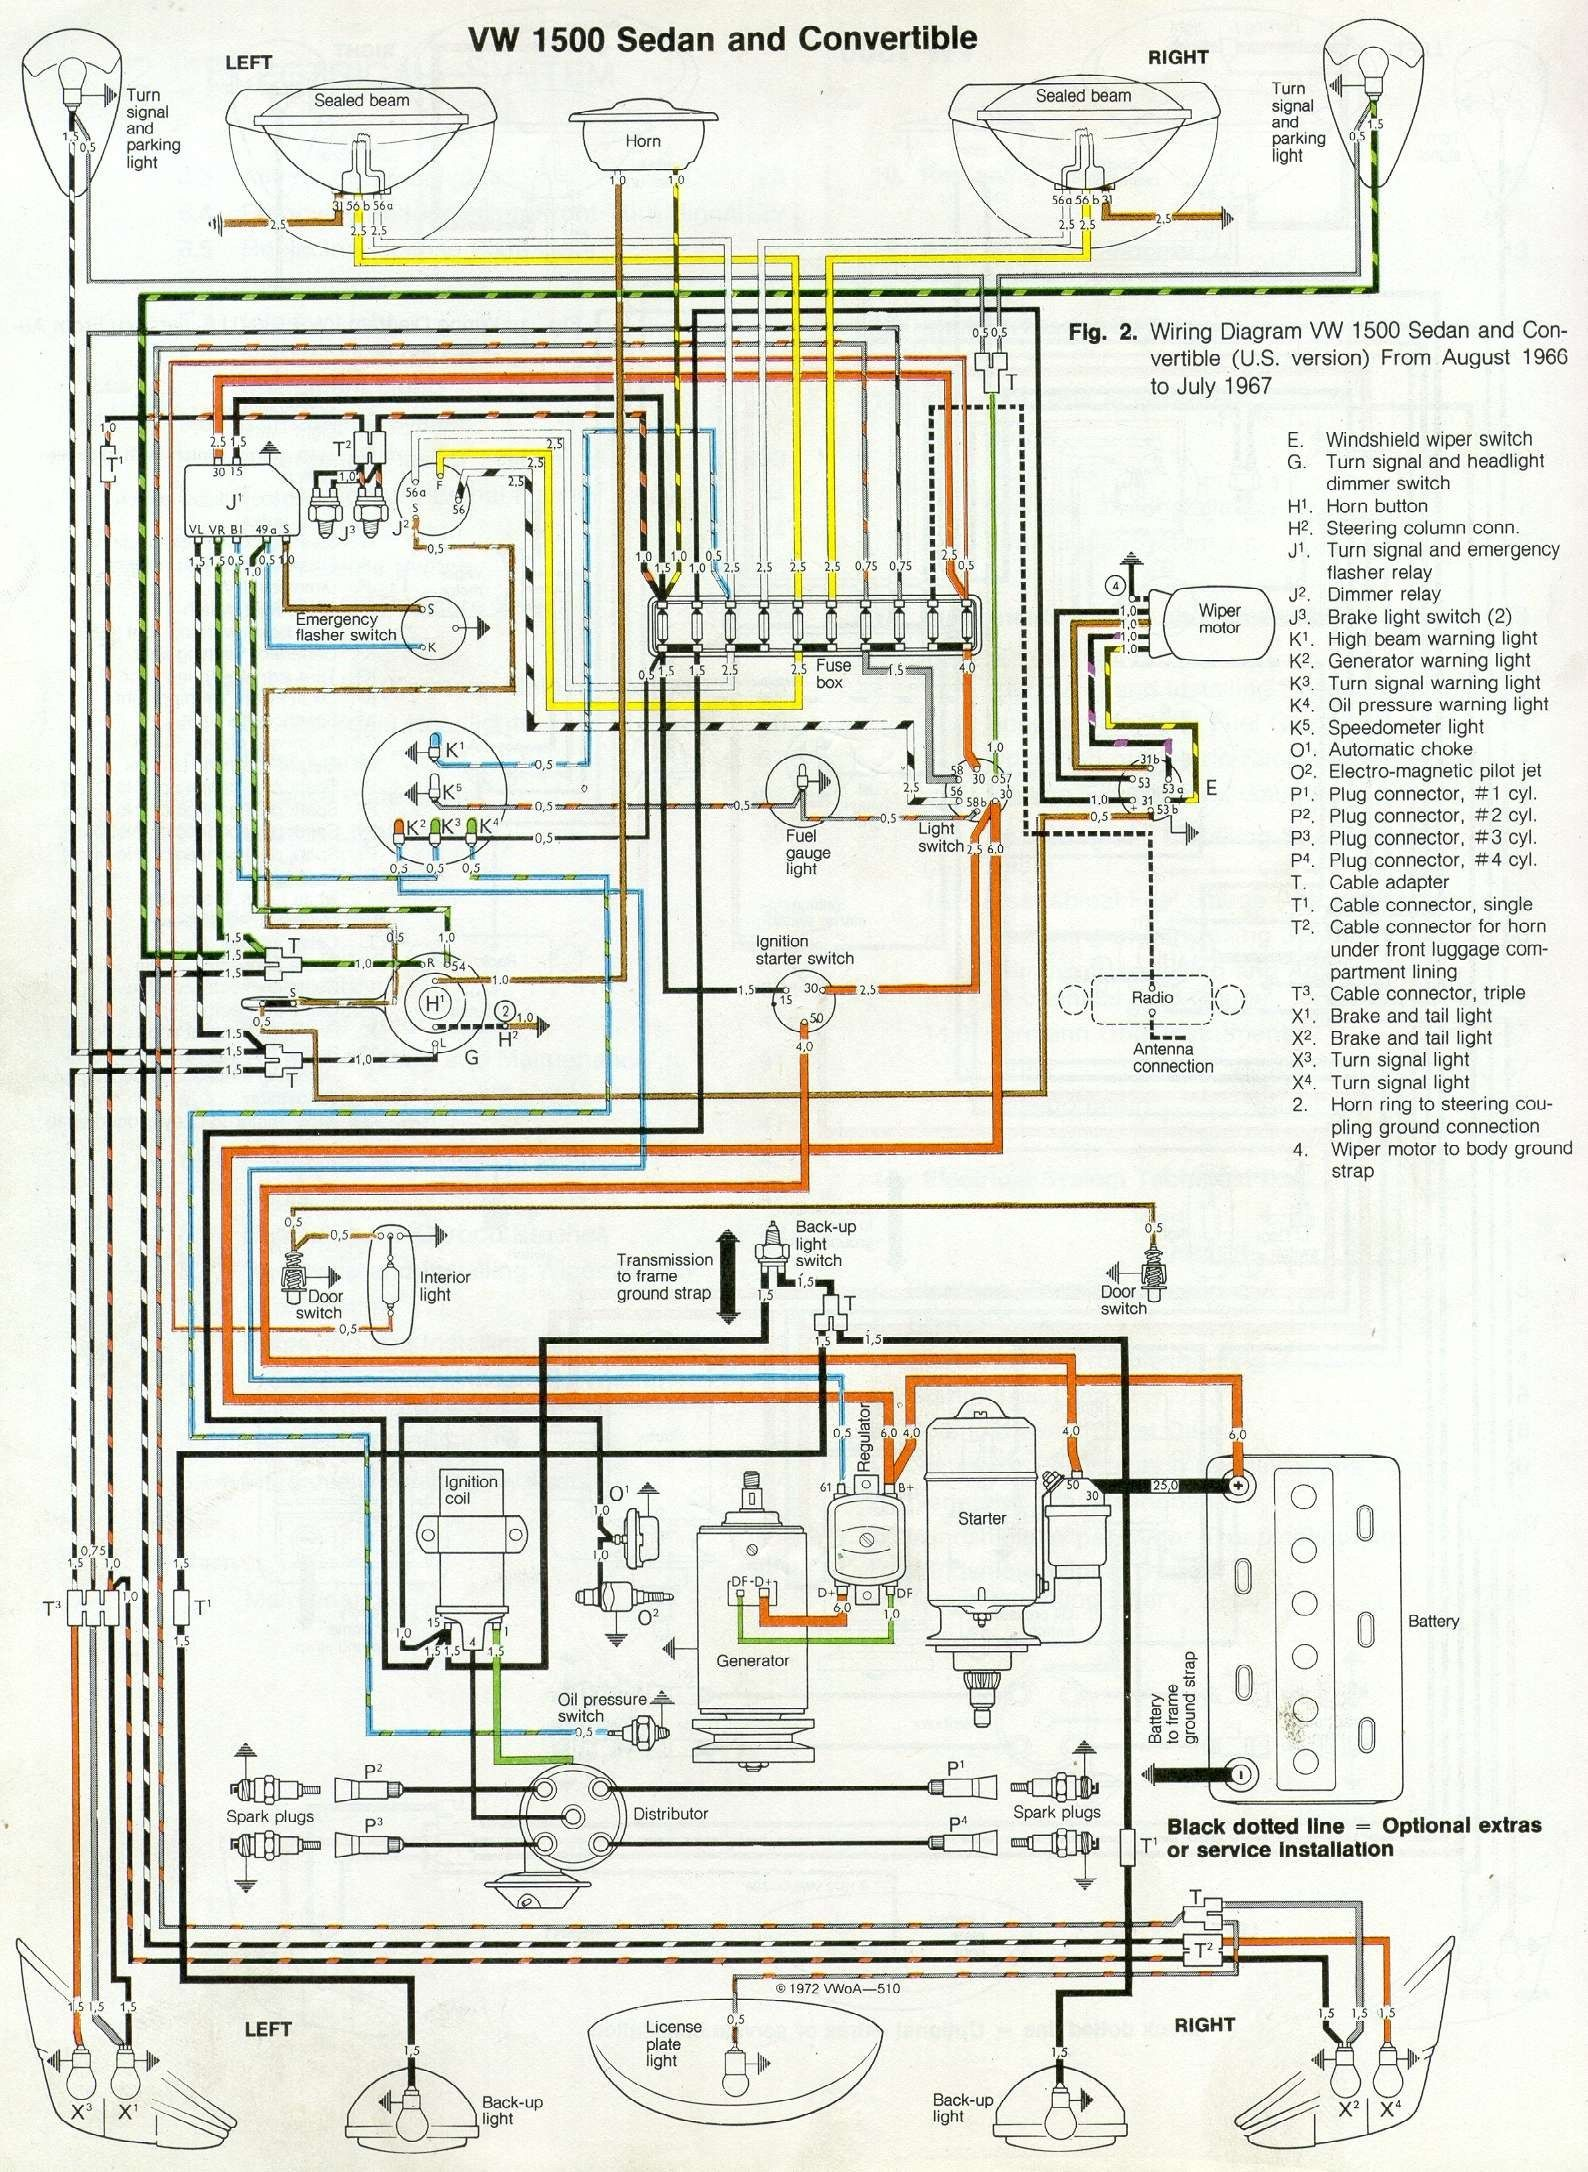 66 and 67 vw beetle wiring diagram vw beetles beetles and vw rh pinterest com VW Bug Coil Wiring VW Bug Starter Wiring